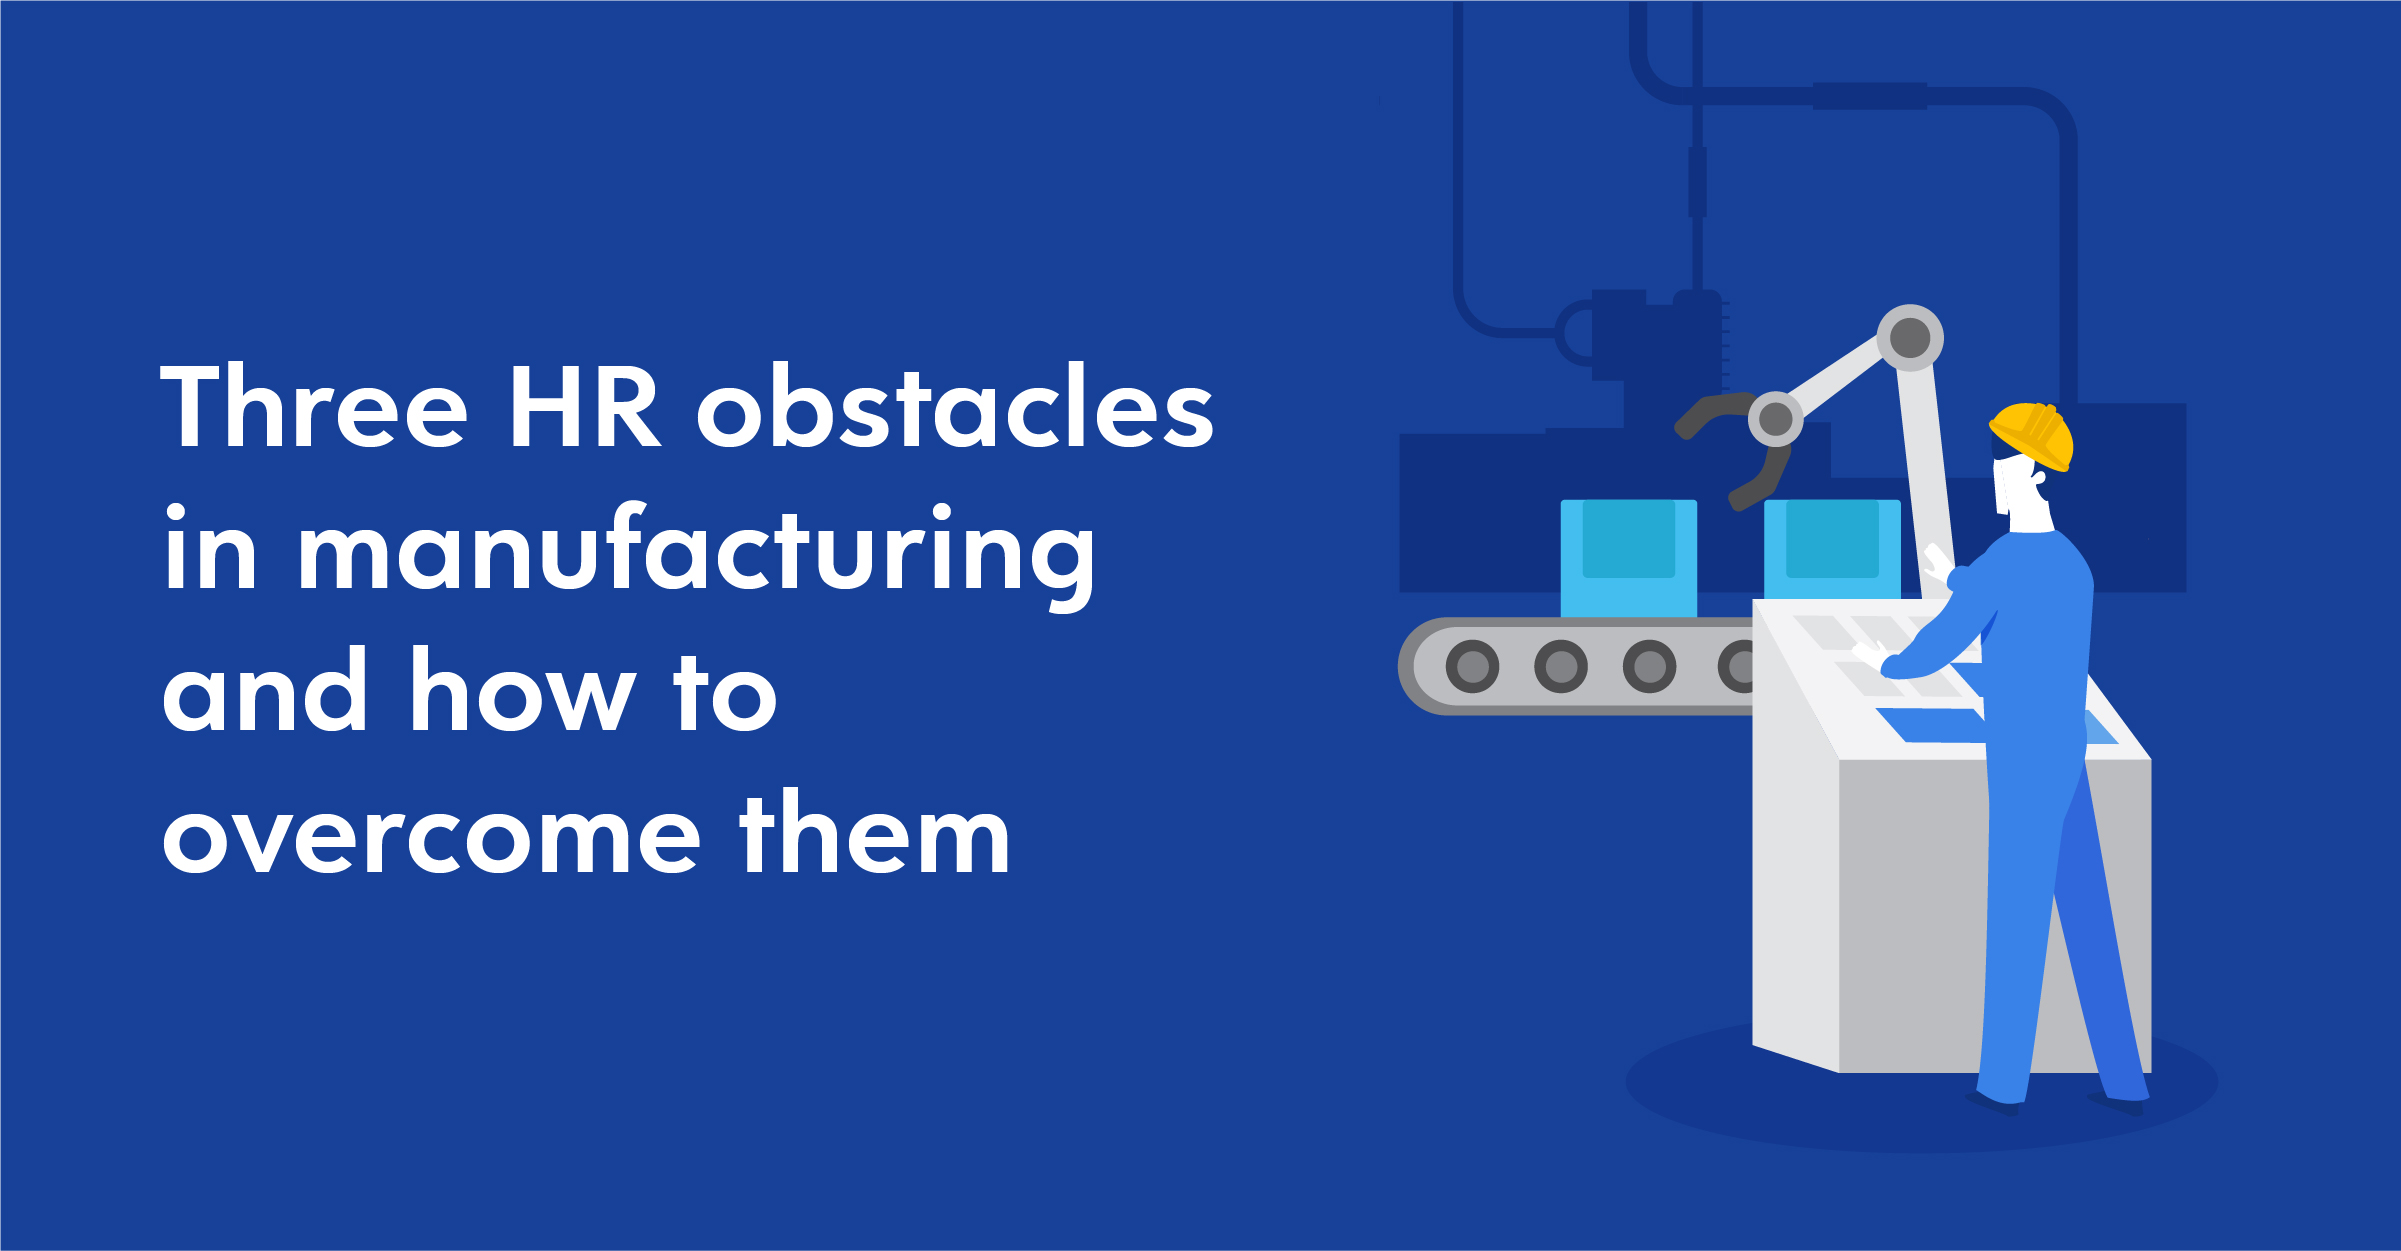 Three obstacles manufacturers must overcome to build the